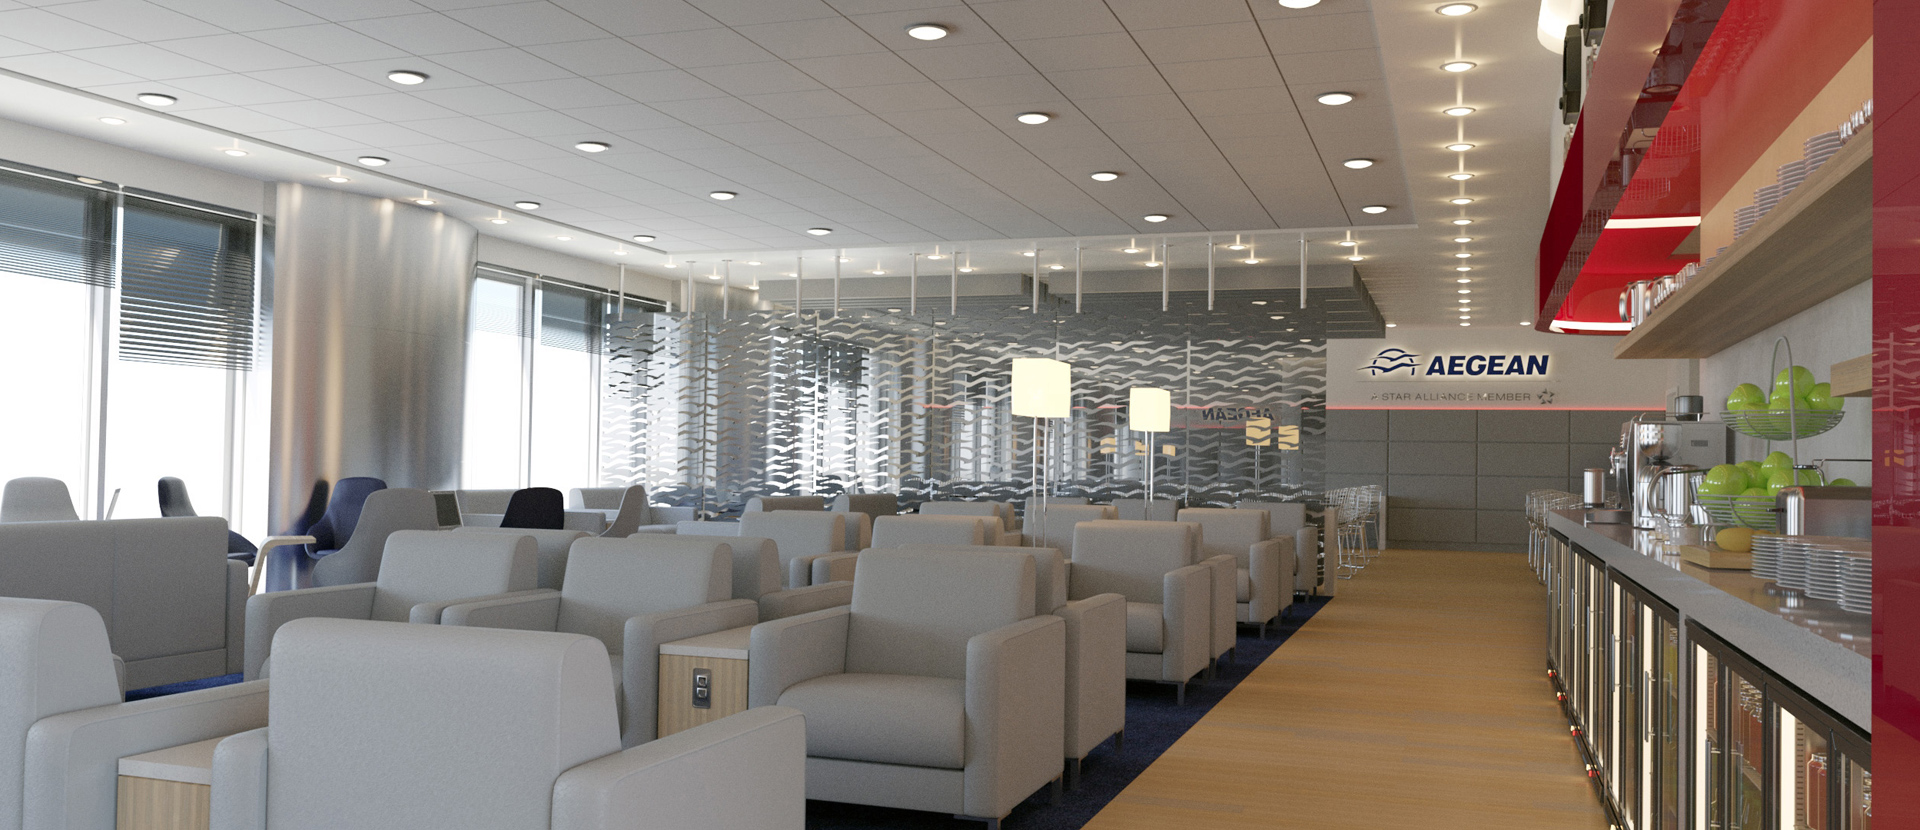 Lounges Aegean Airlines